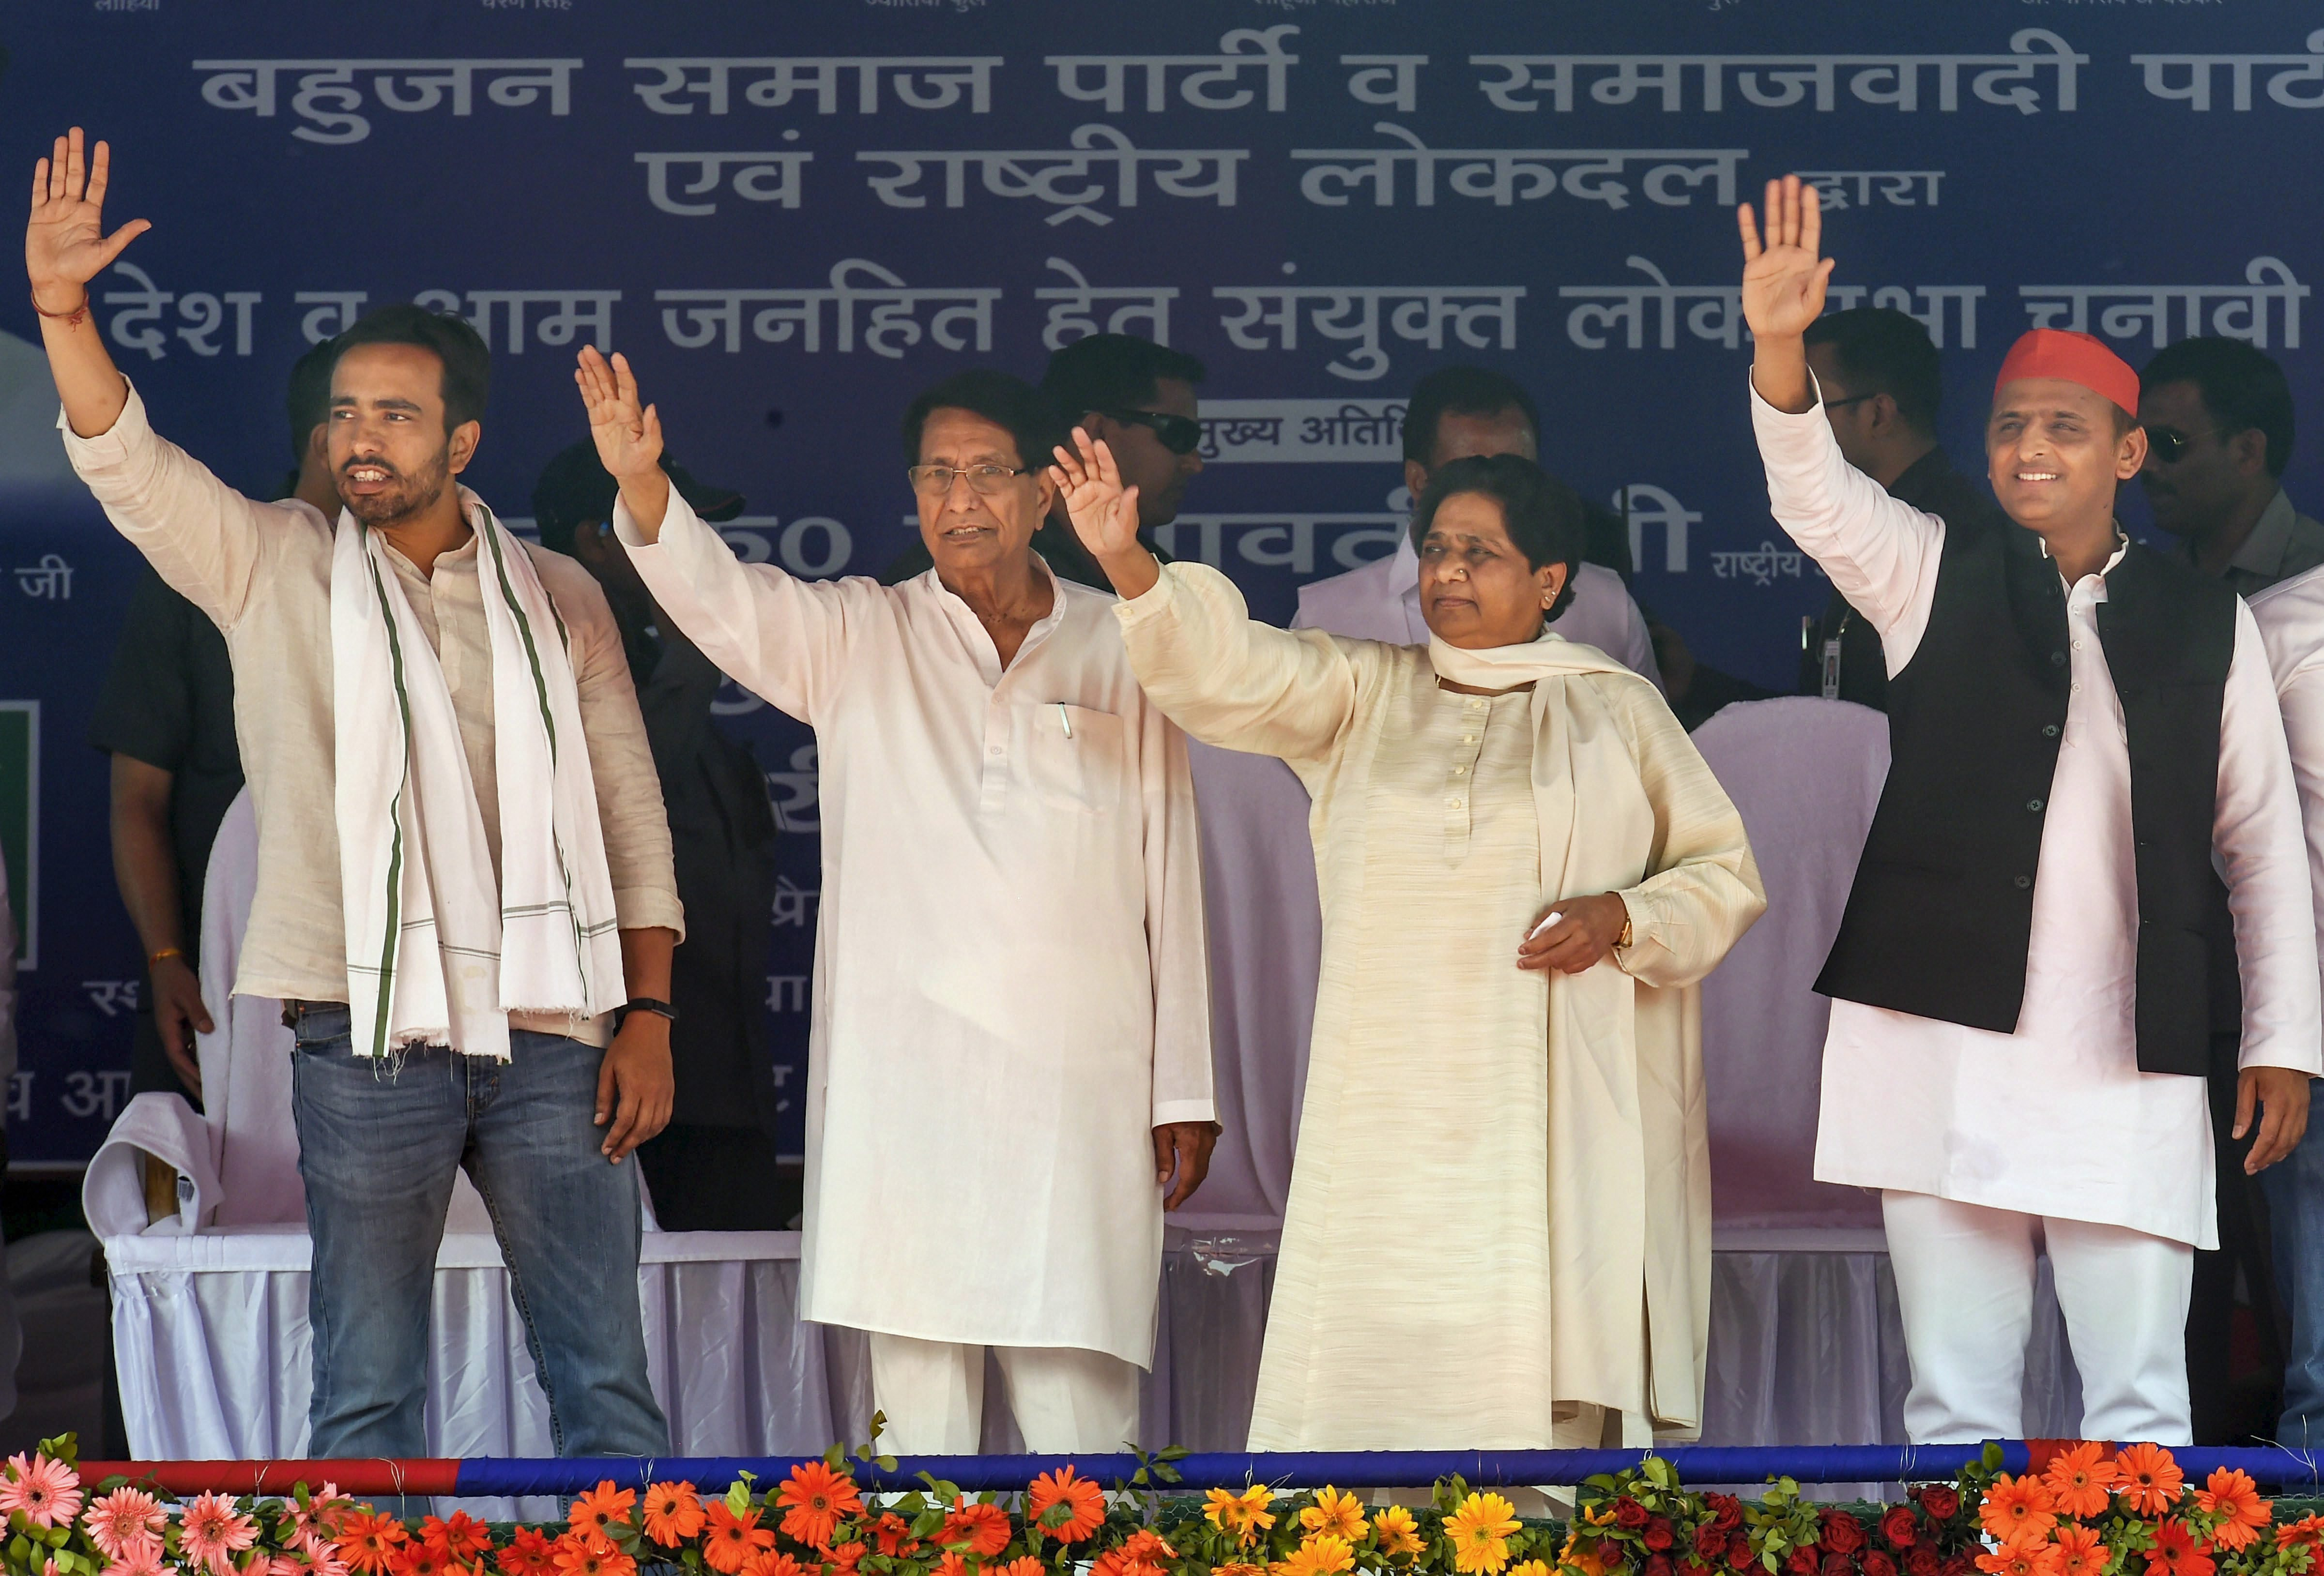 RLD's Jayant Chaudhary and father Ajit Singh with BSP chief Mayawati an Samajwadi Party president Akhilesh Yadav at their joint election rally in Deoband, Saharanpur, on April 7.